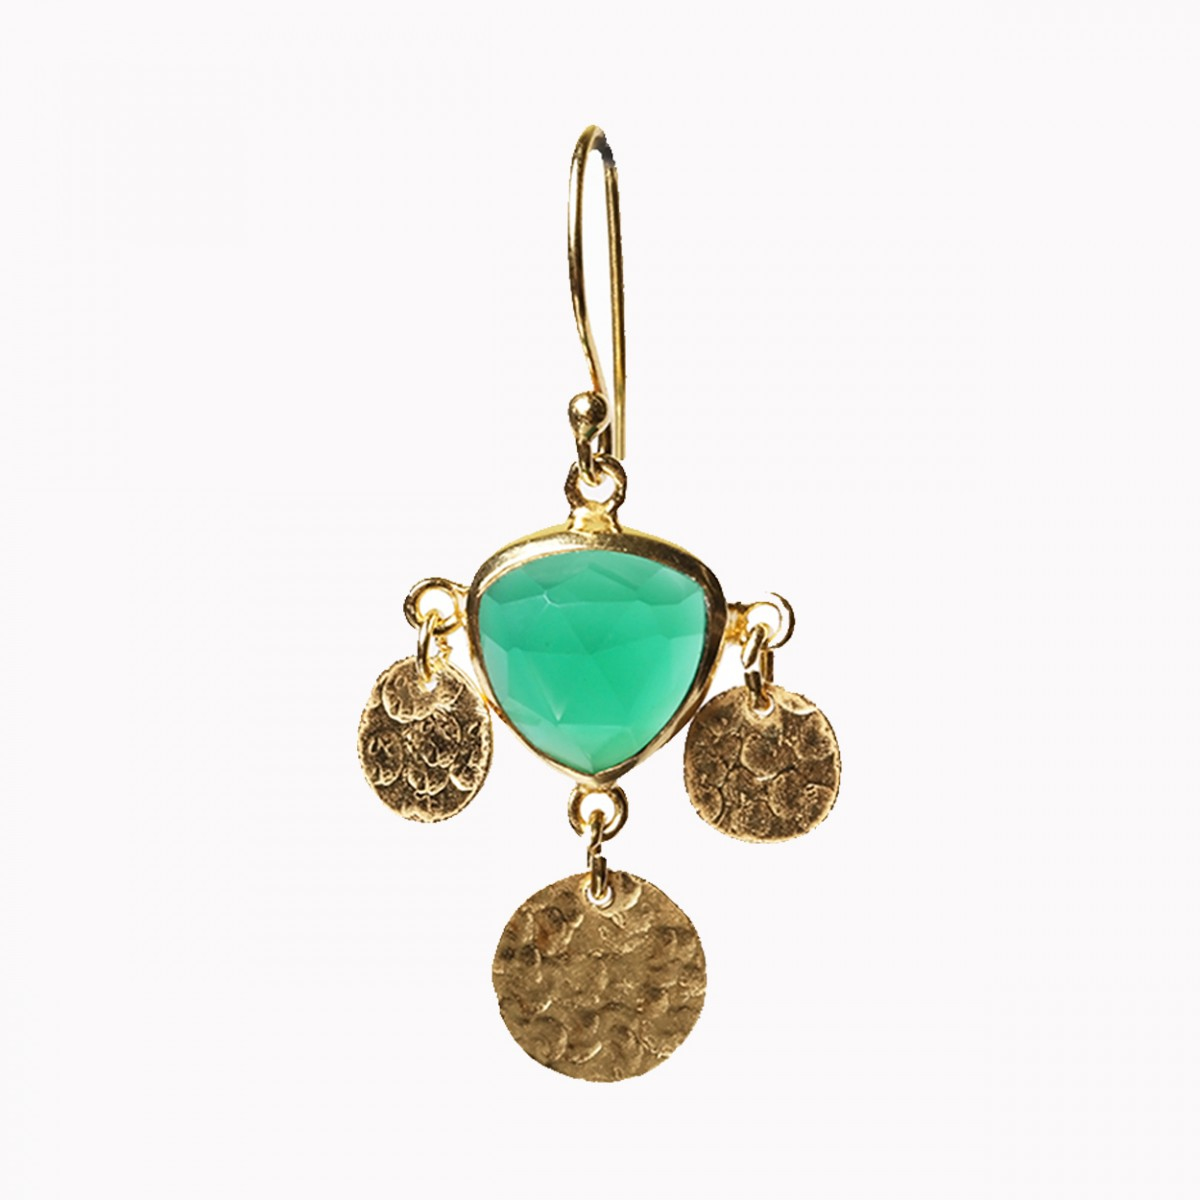 Gemstone Earrings - Green Onyx